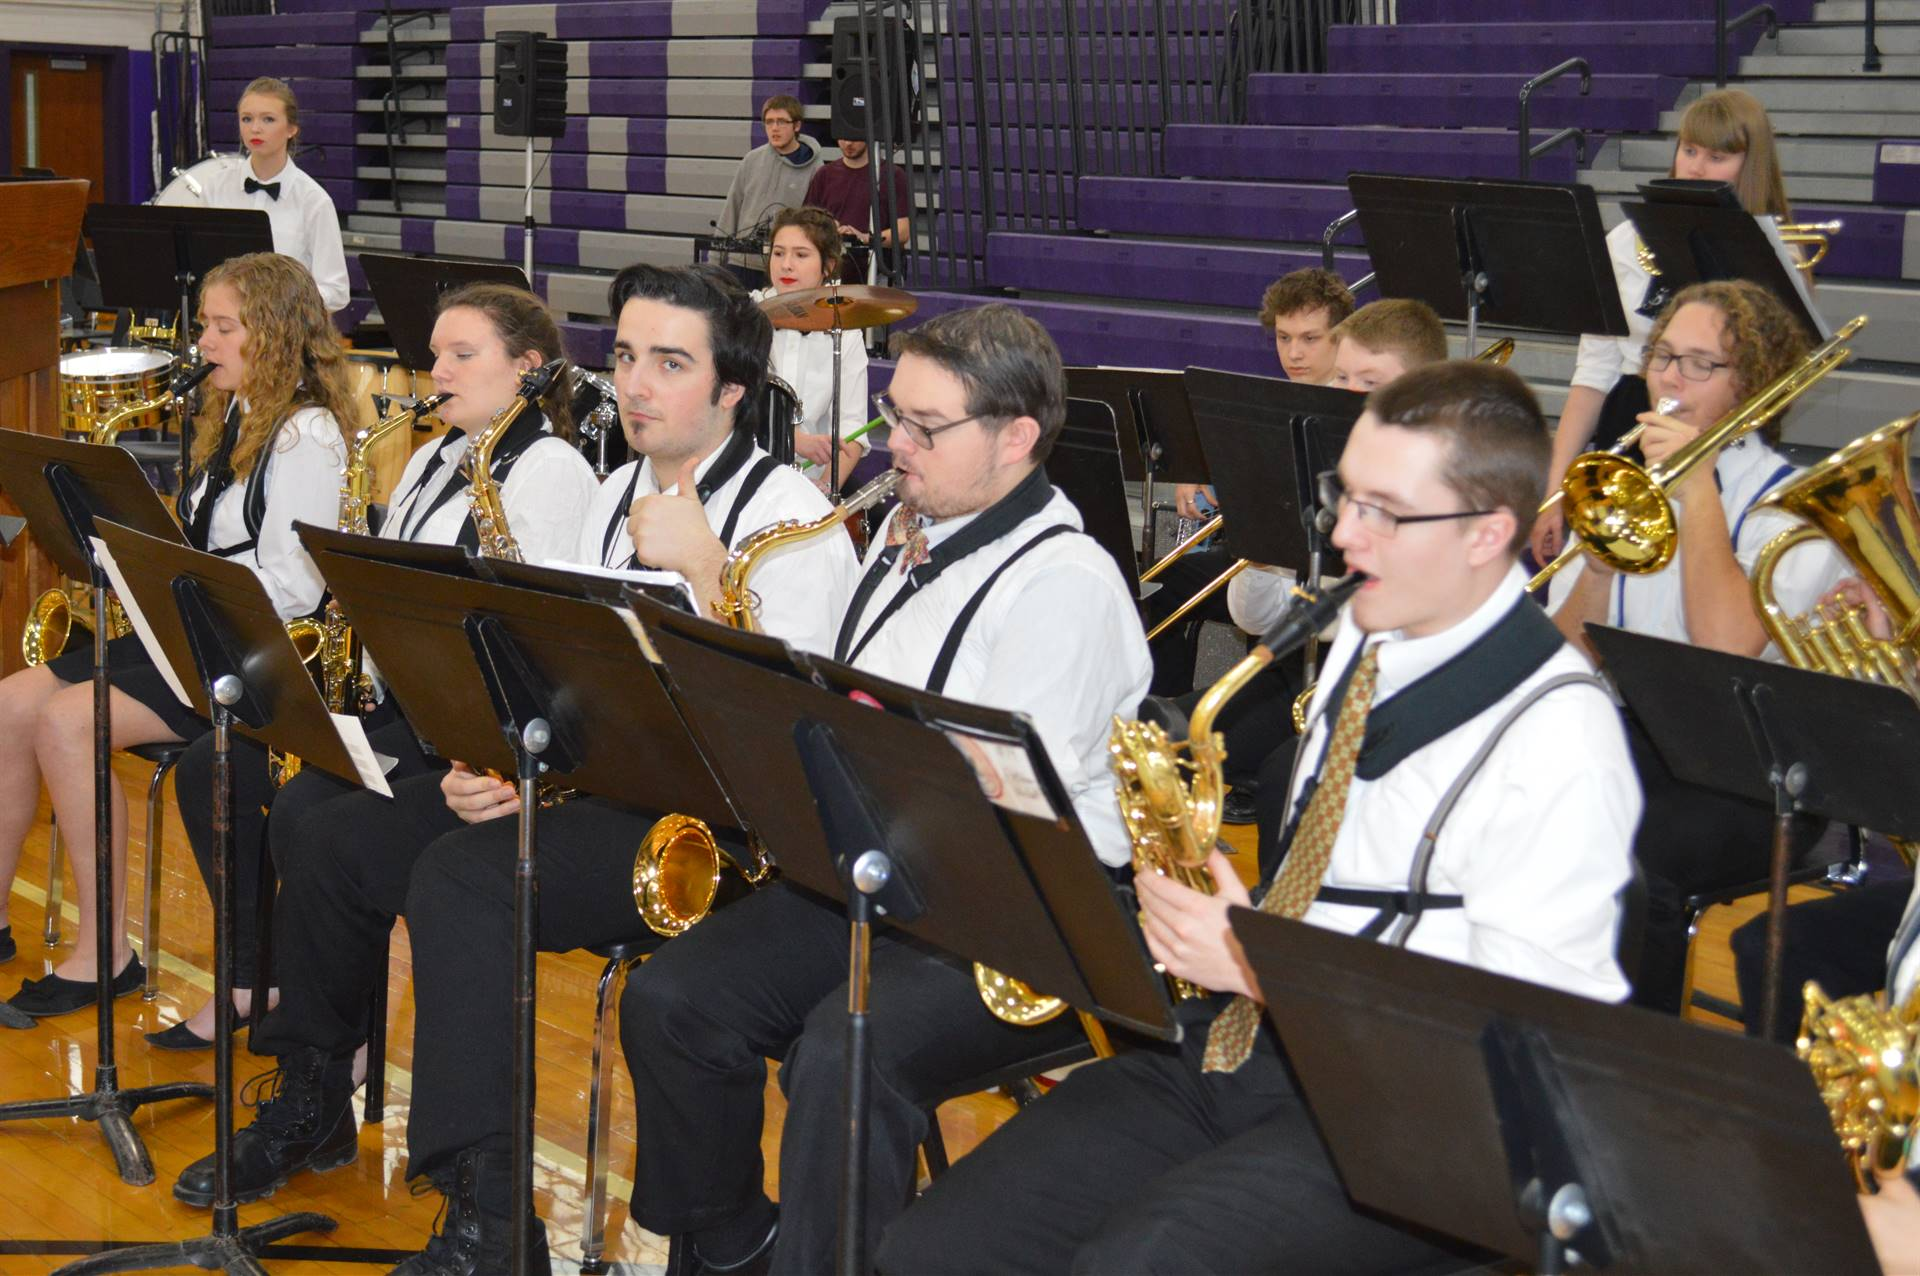 ACAMT Winter 18 Jazz Band saxophones and trombone